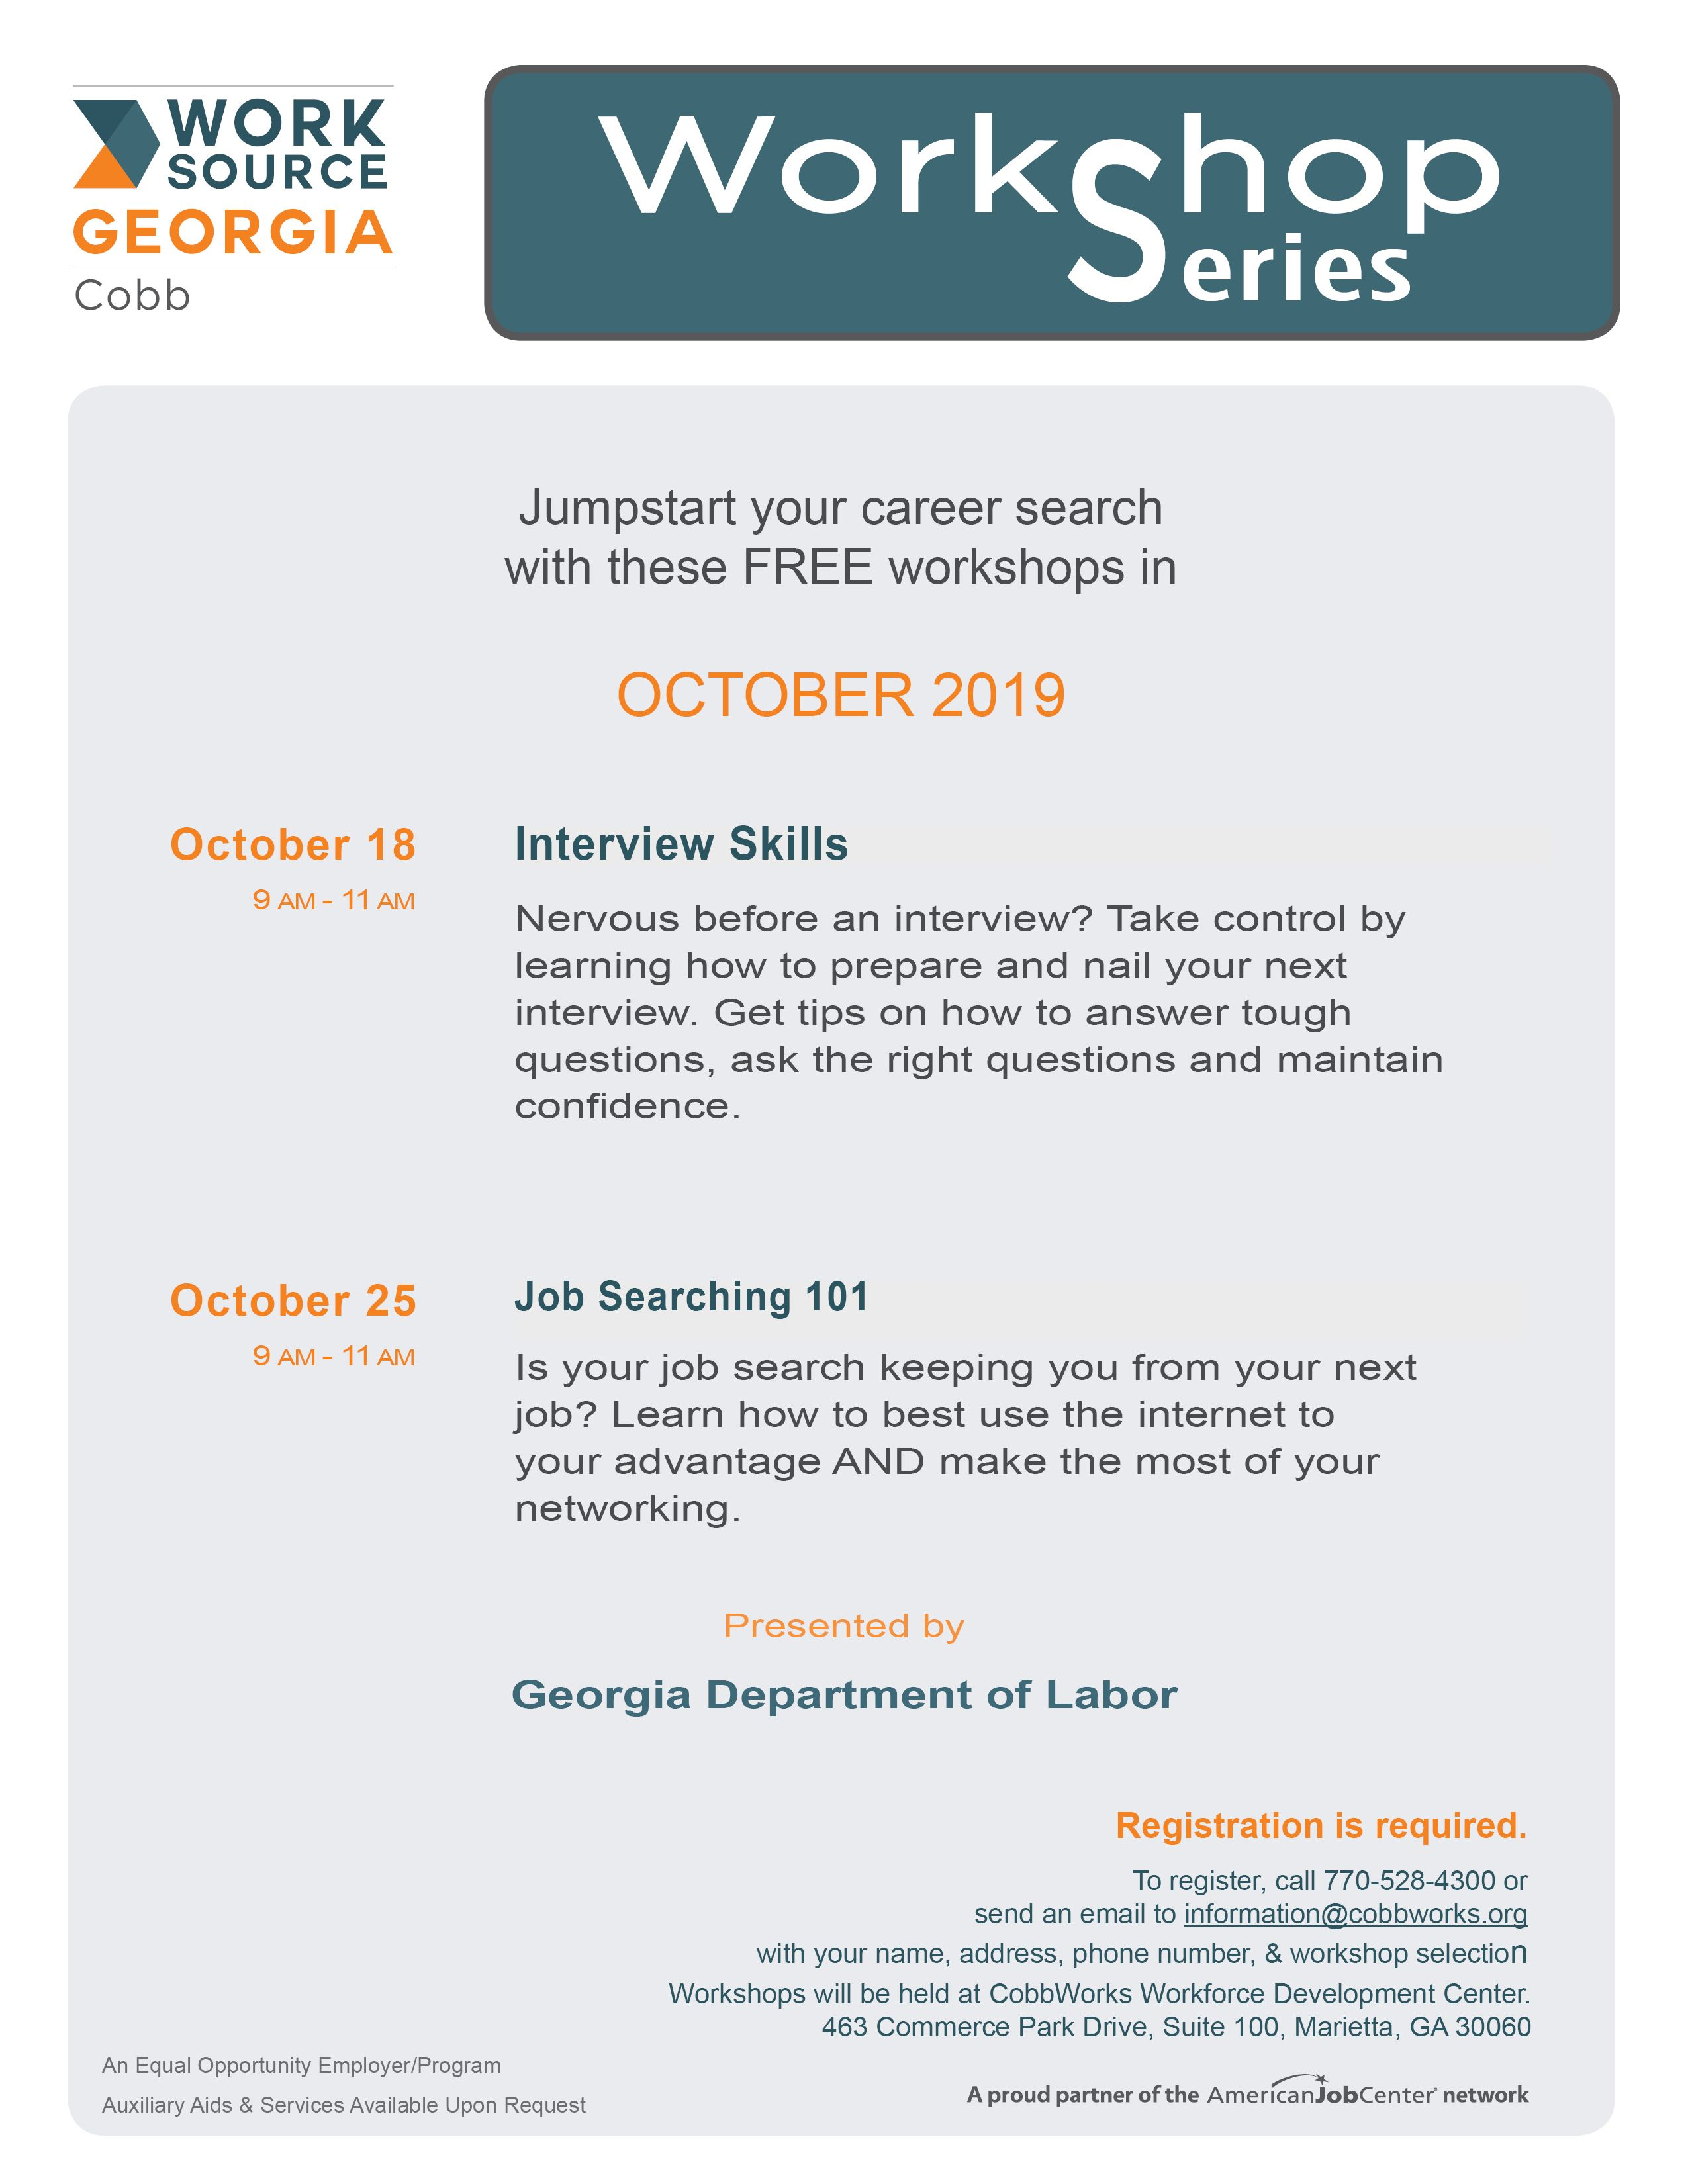 Interview skills workshop will be on October 18 at 9 AM